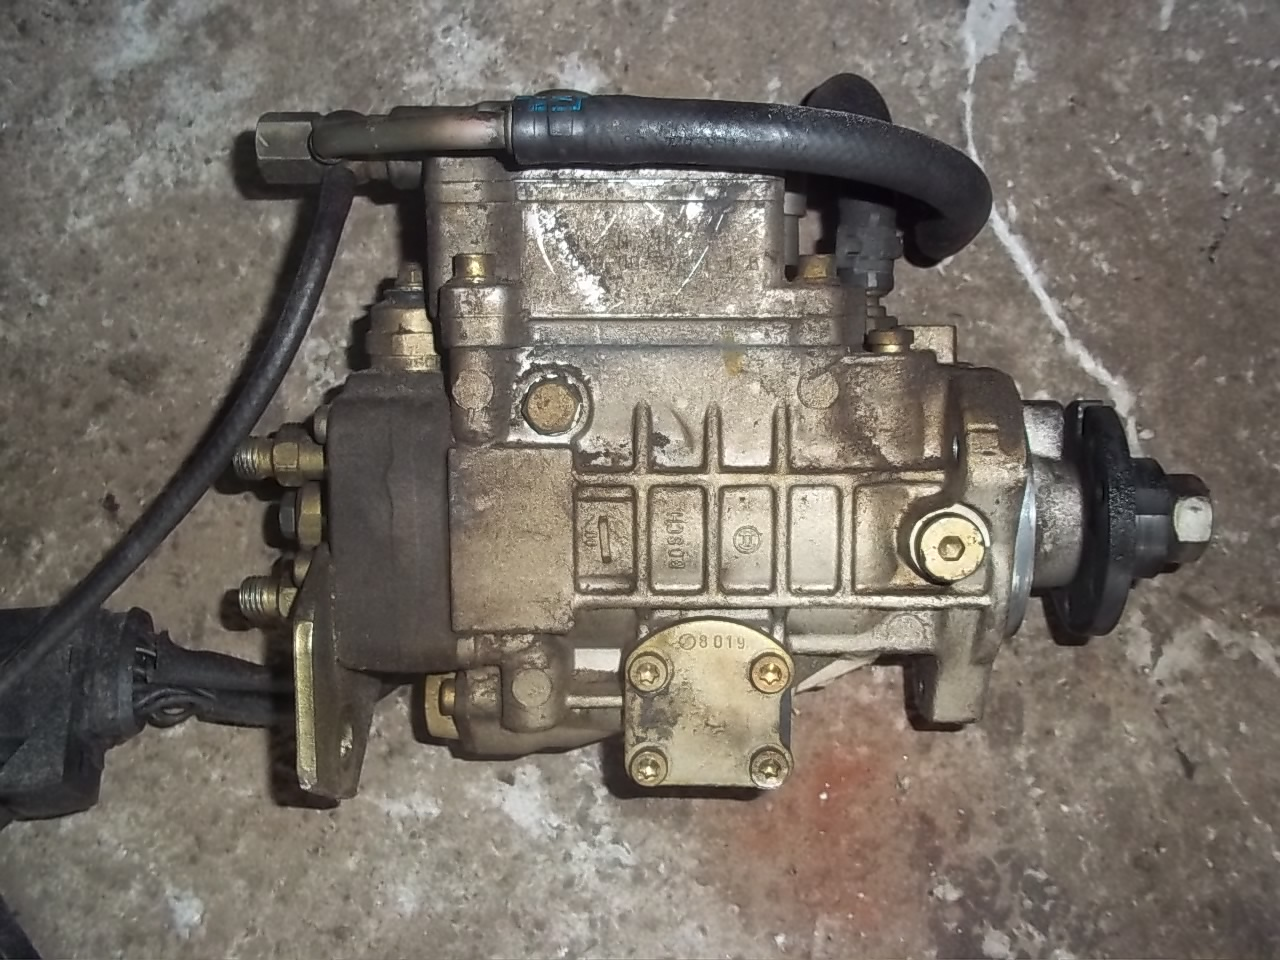 Pompa de injectie Vw Bora, Caddy II, Golf IV, Polo 1.9 TDI cod 0460404977